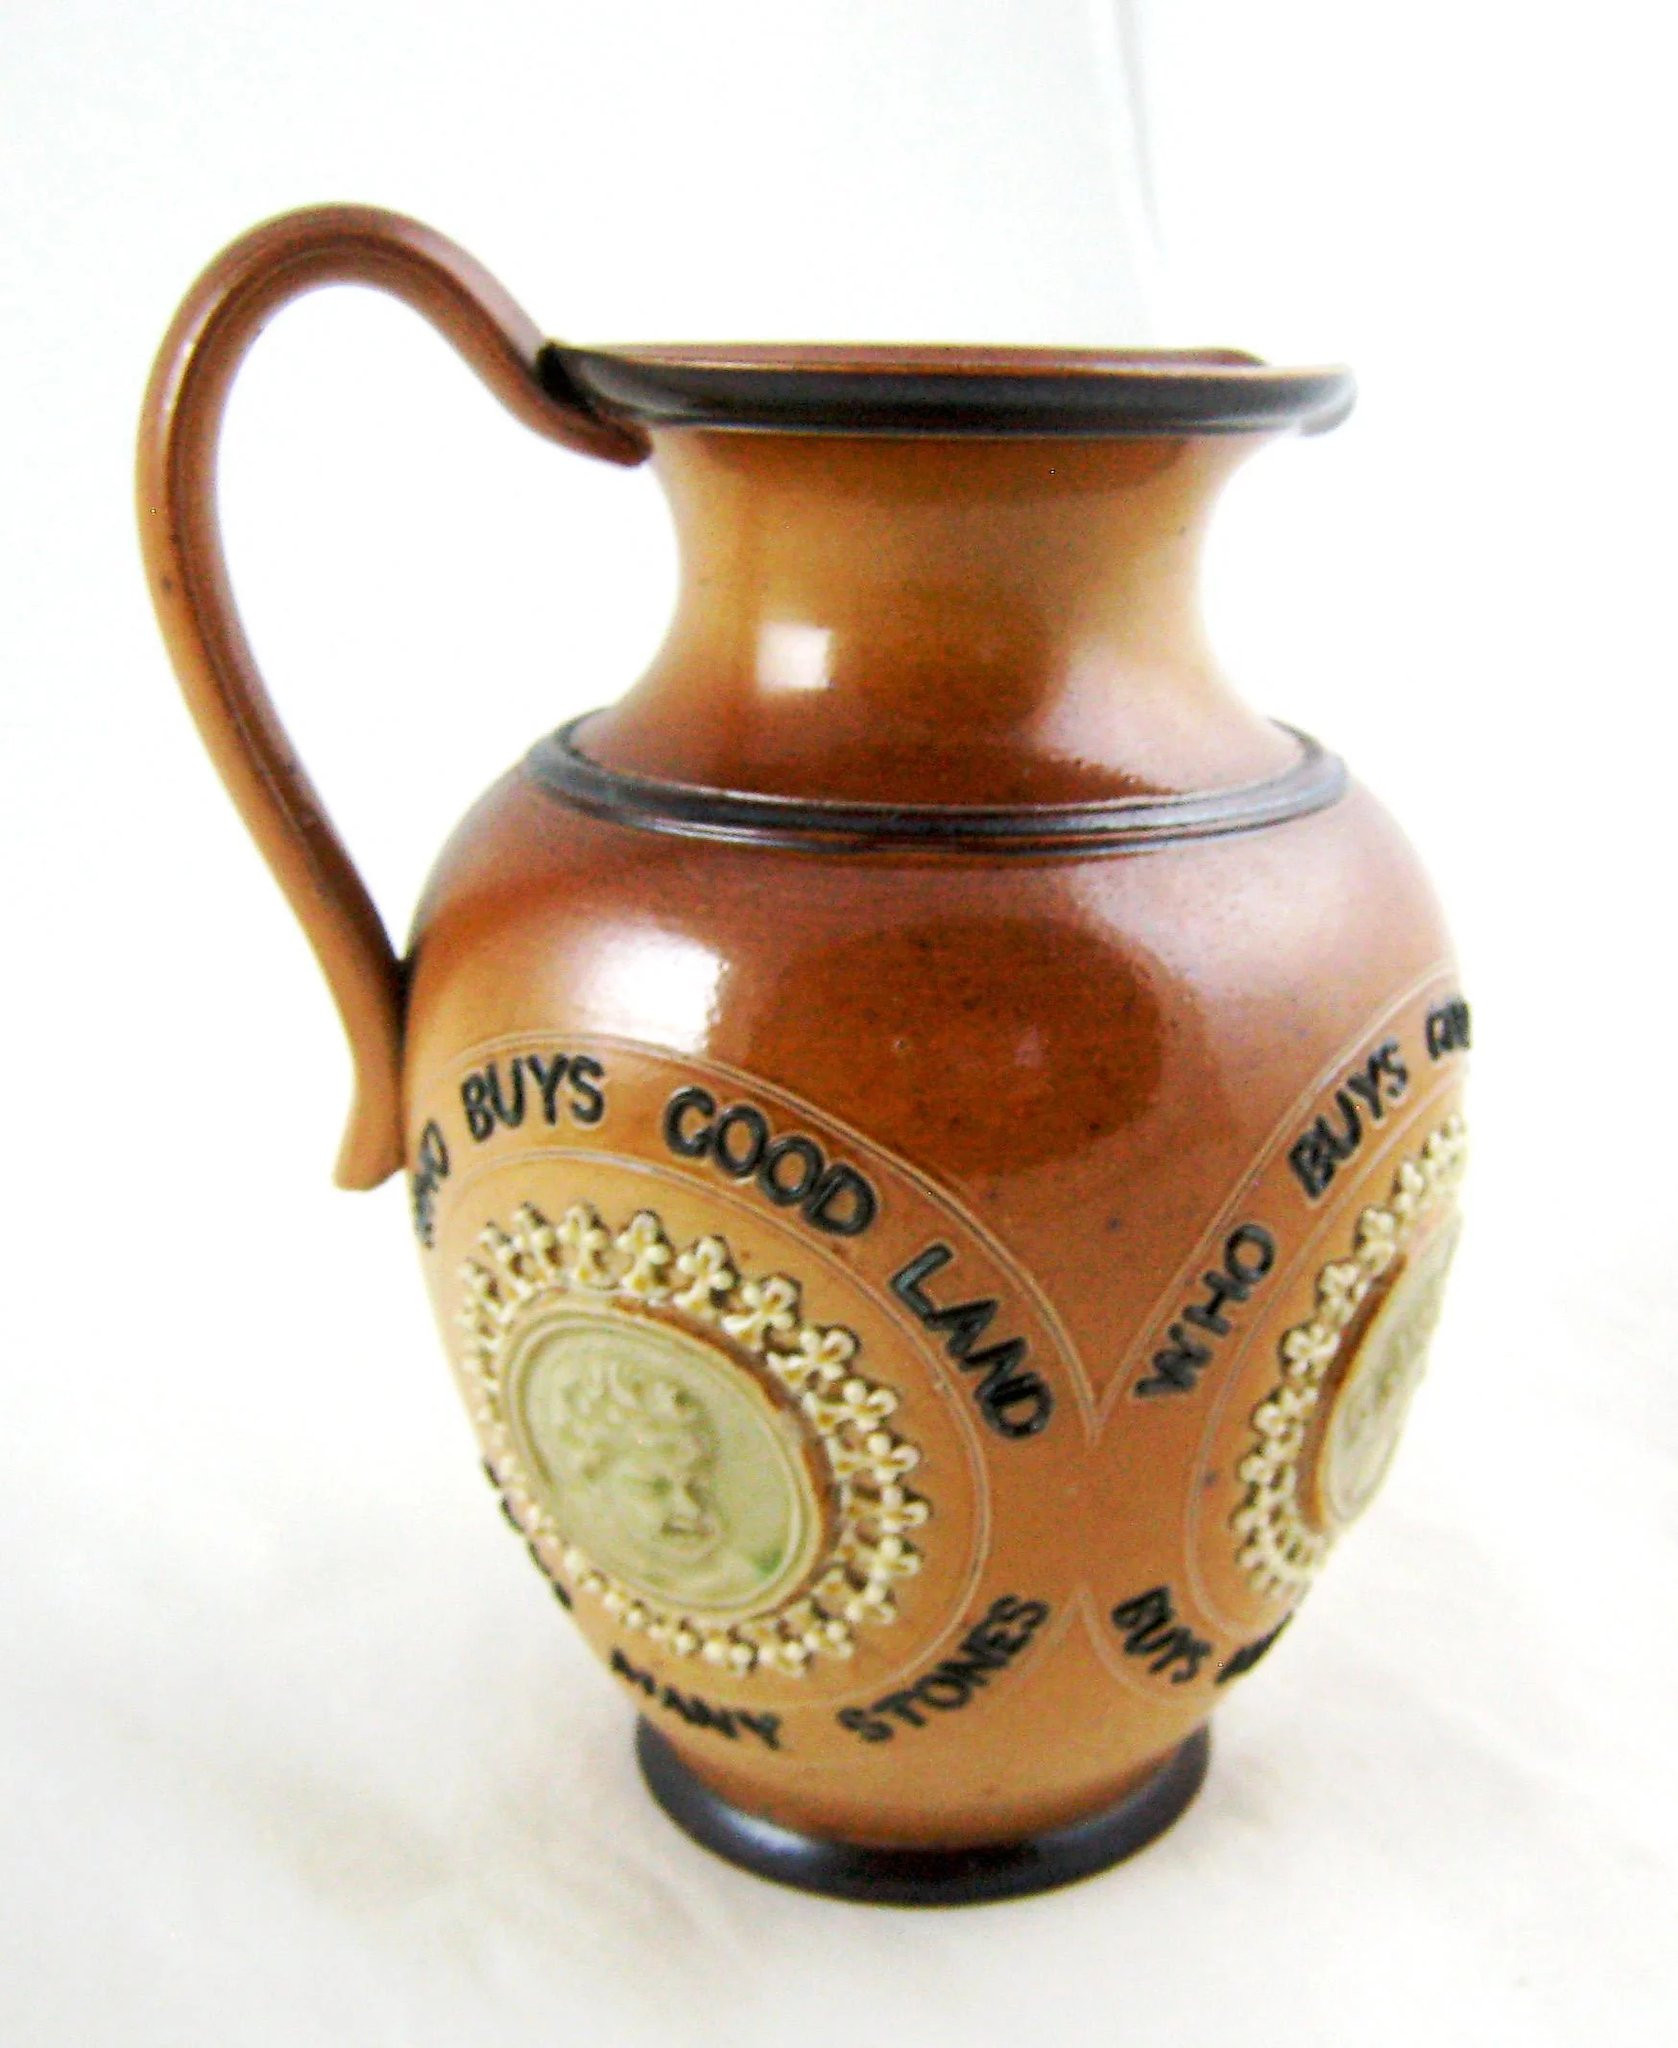 doulton lambeth vase of victorian doulton lambeth motto jug pitcher valerie ivory antiques intended for victorian doulton lambeth motto jug pitcher click to expand